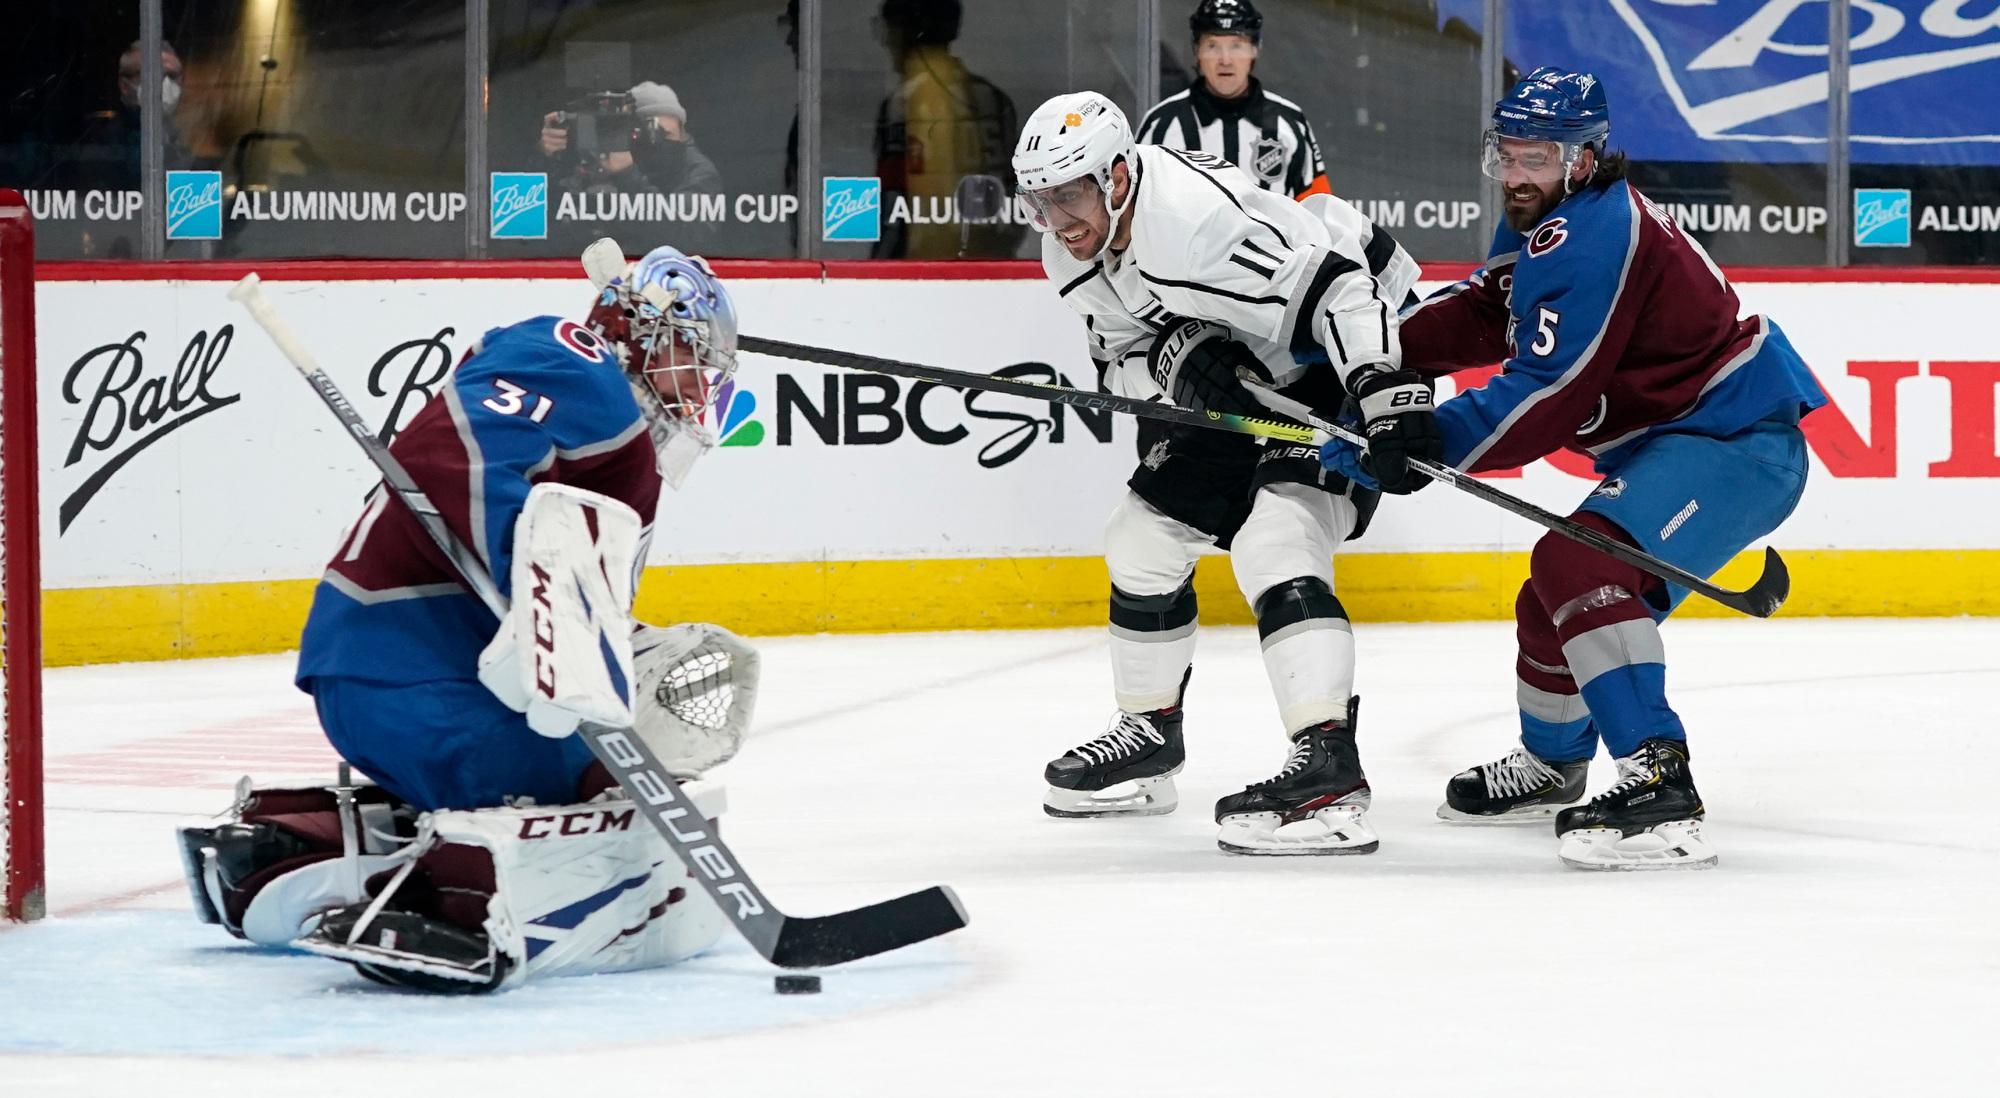 NHL Playoffs betting preview round 1